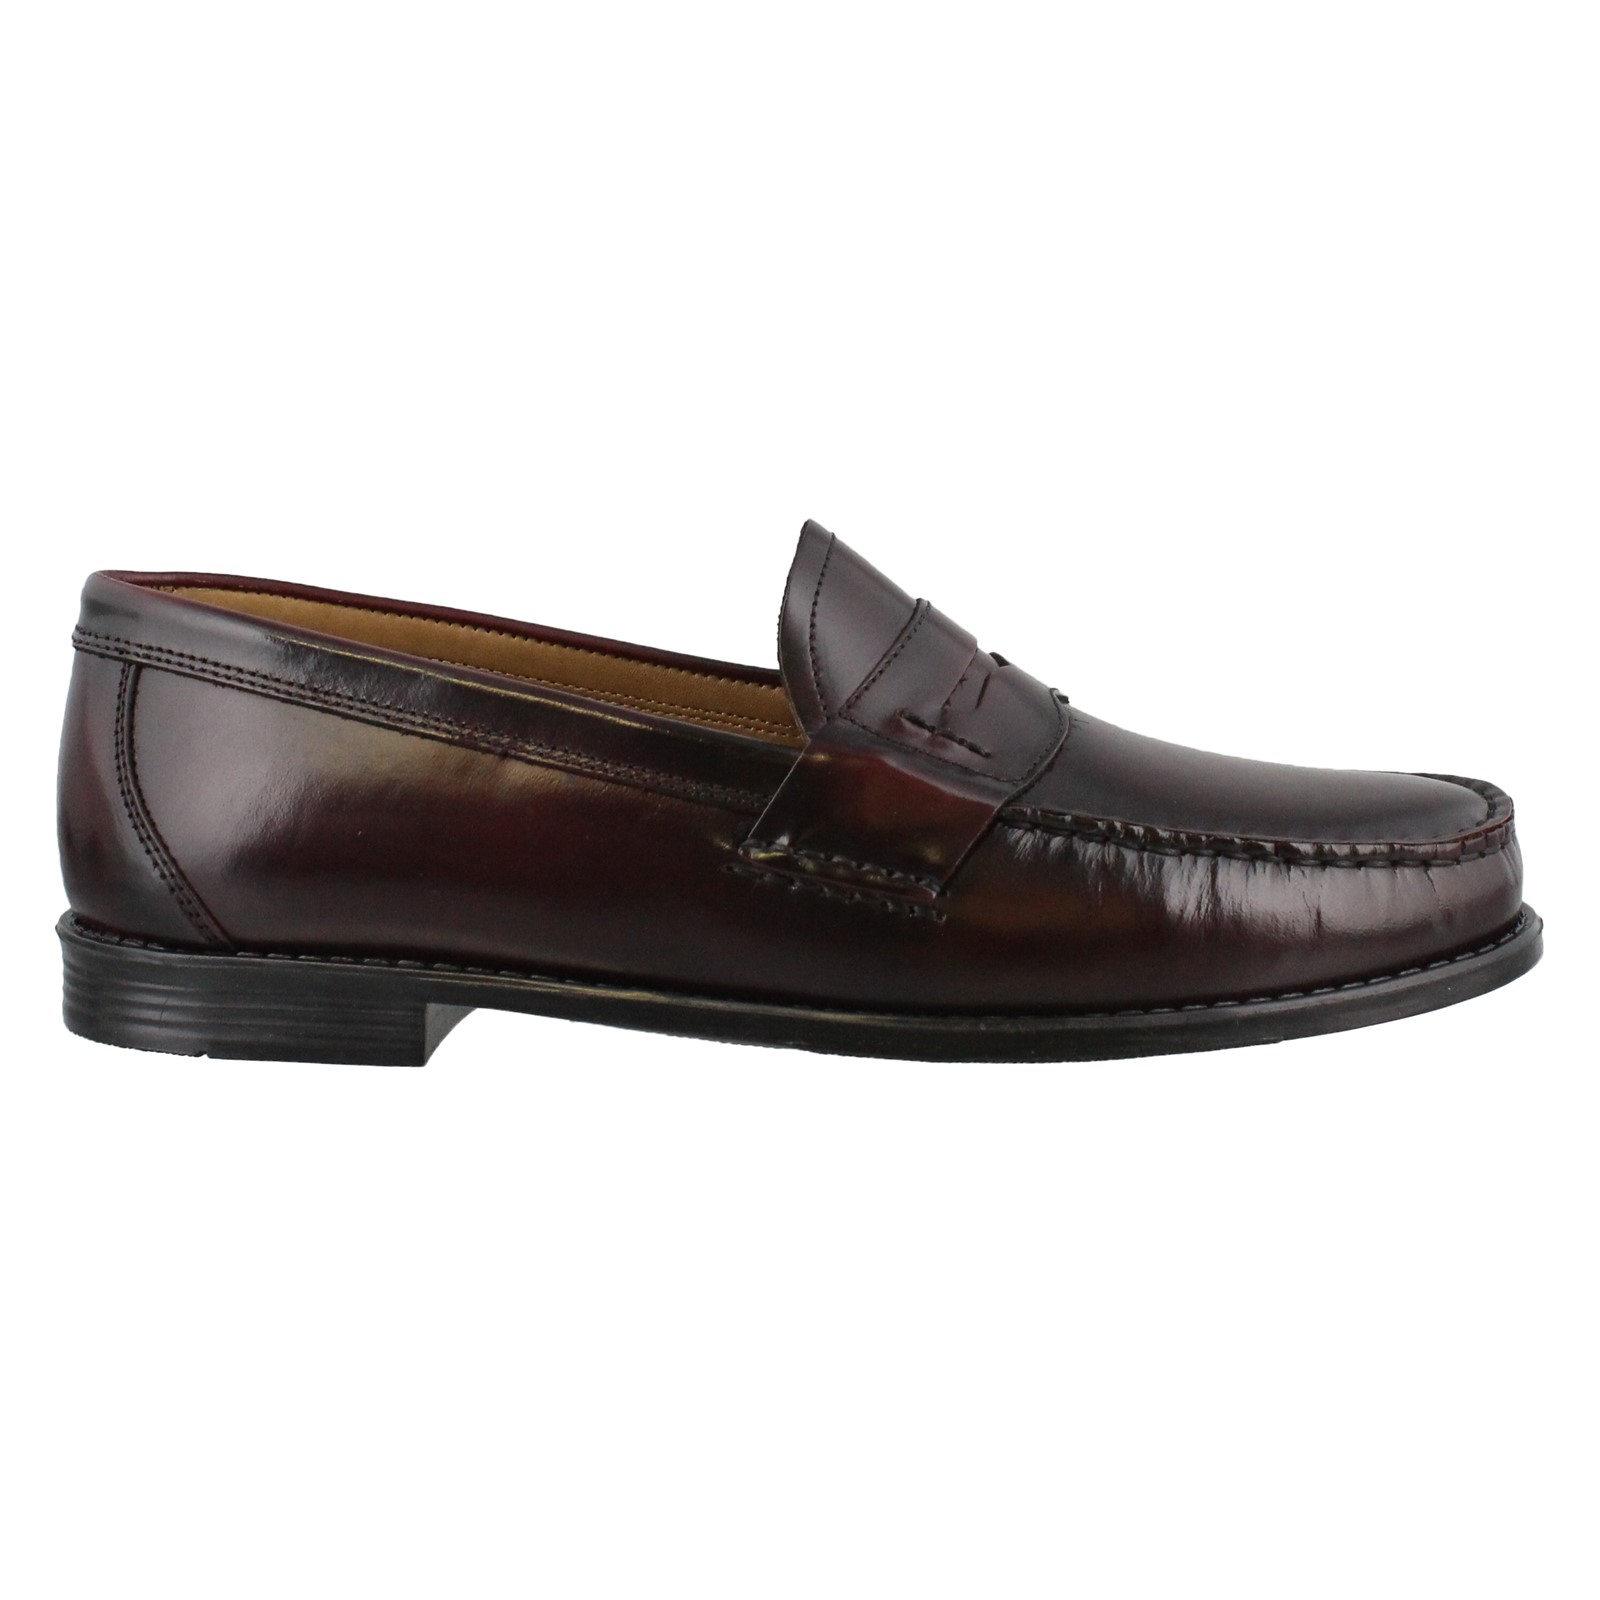 Men's GH Bass and Co, Wagner Slip on Loafers